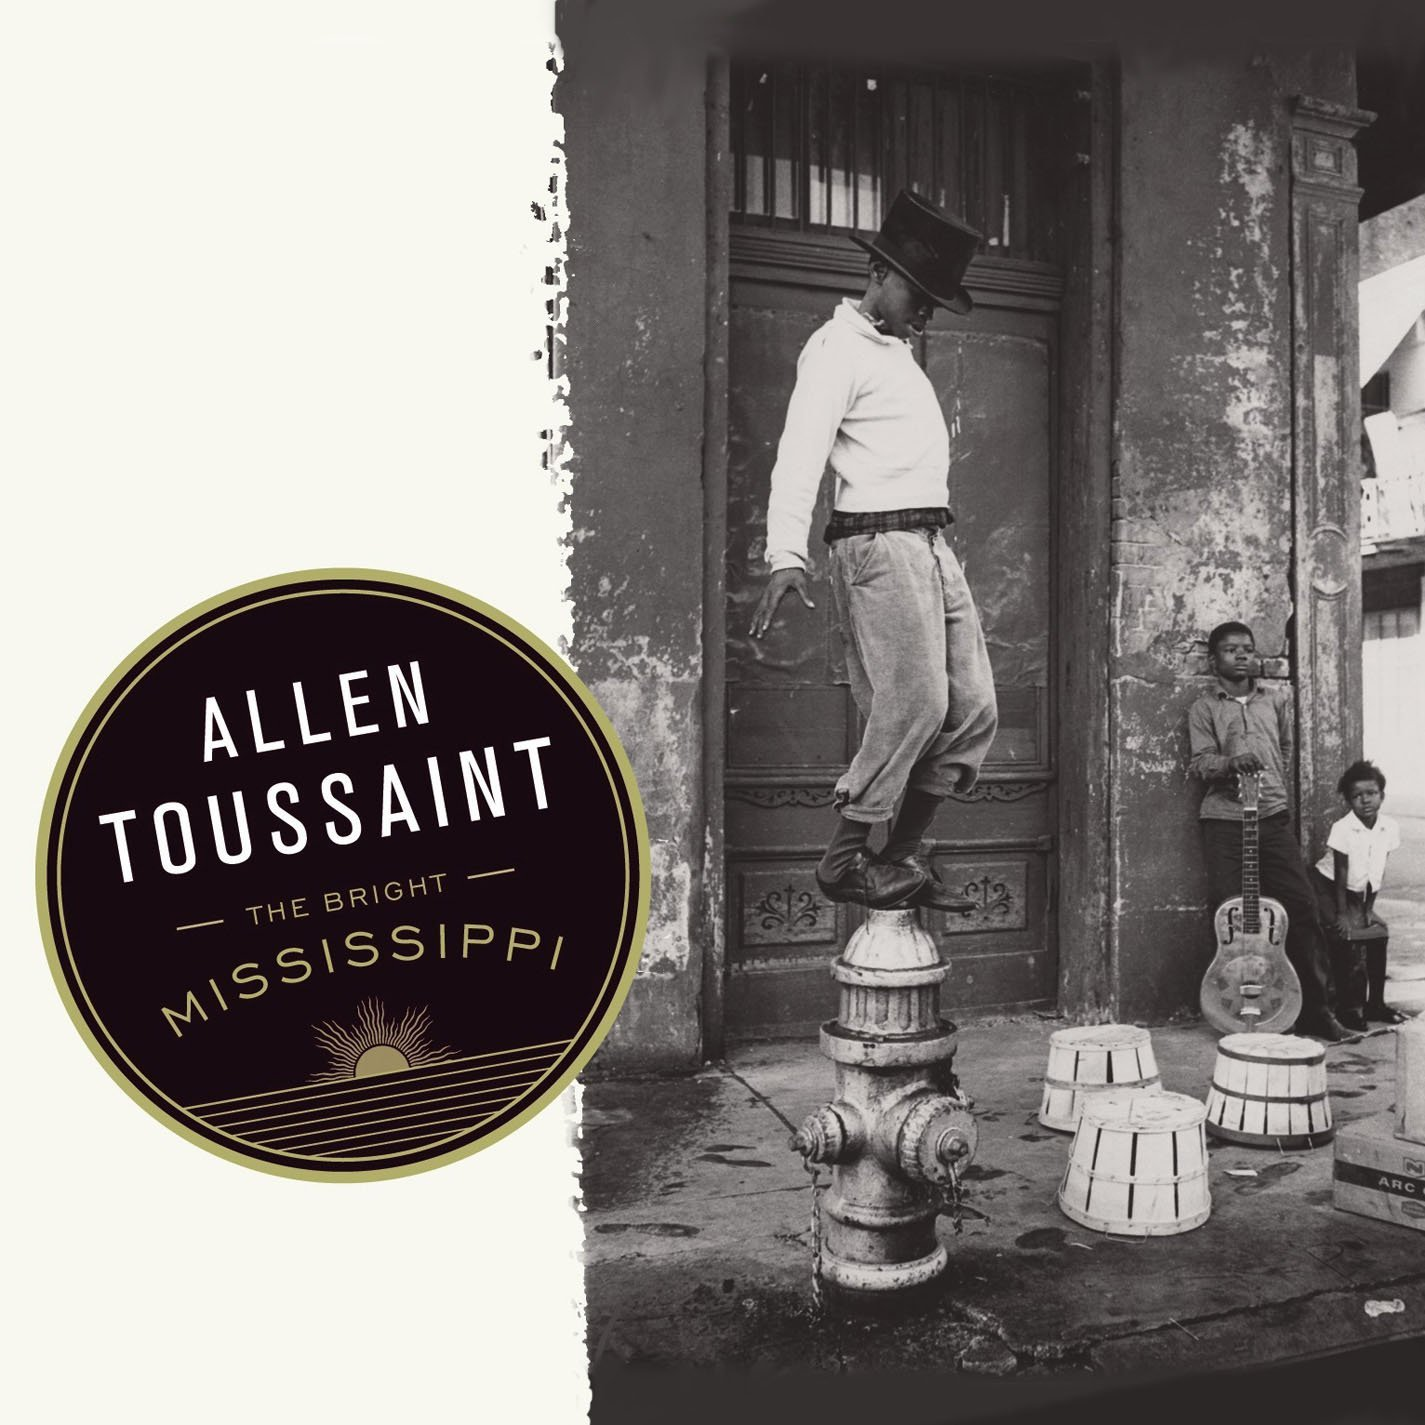 Allen Toussaint, The Bright Mississippi